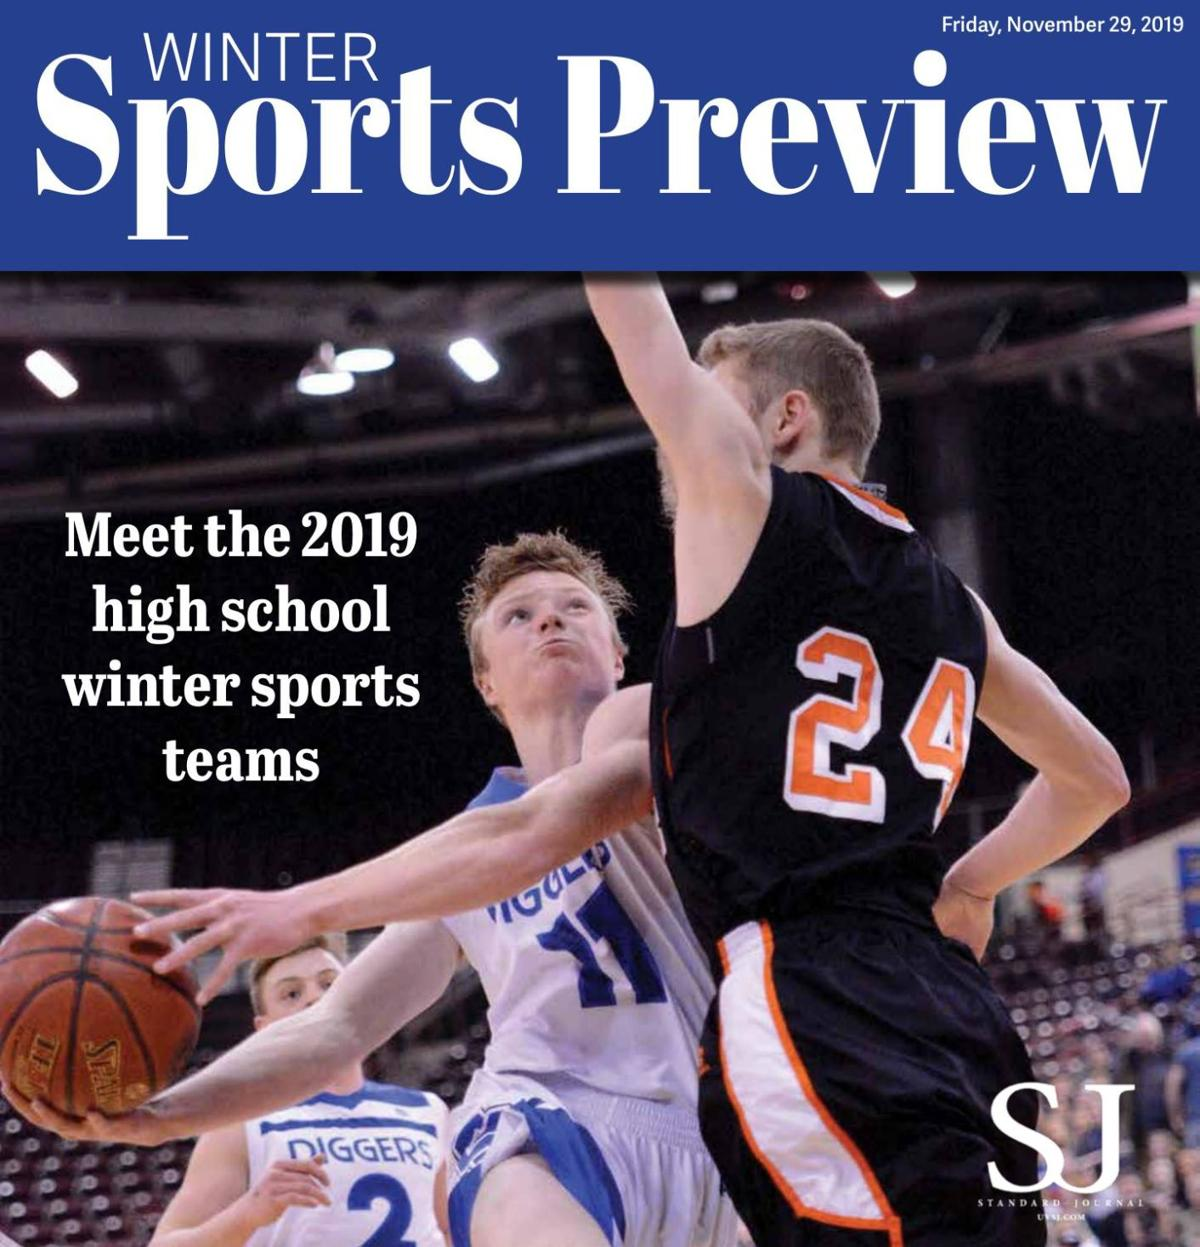 Winter Sports Preview 2019-2020